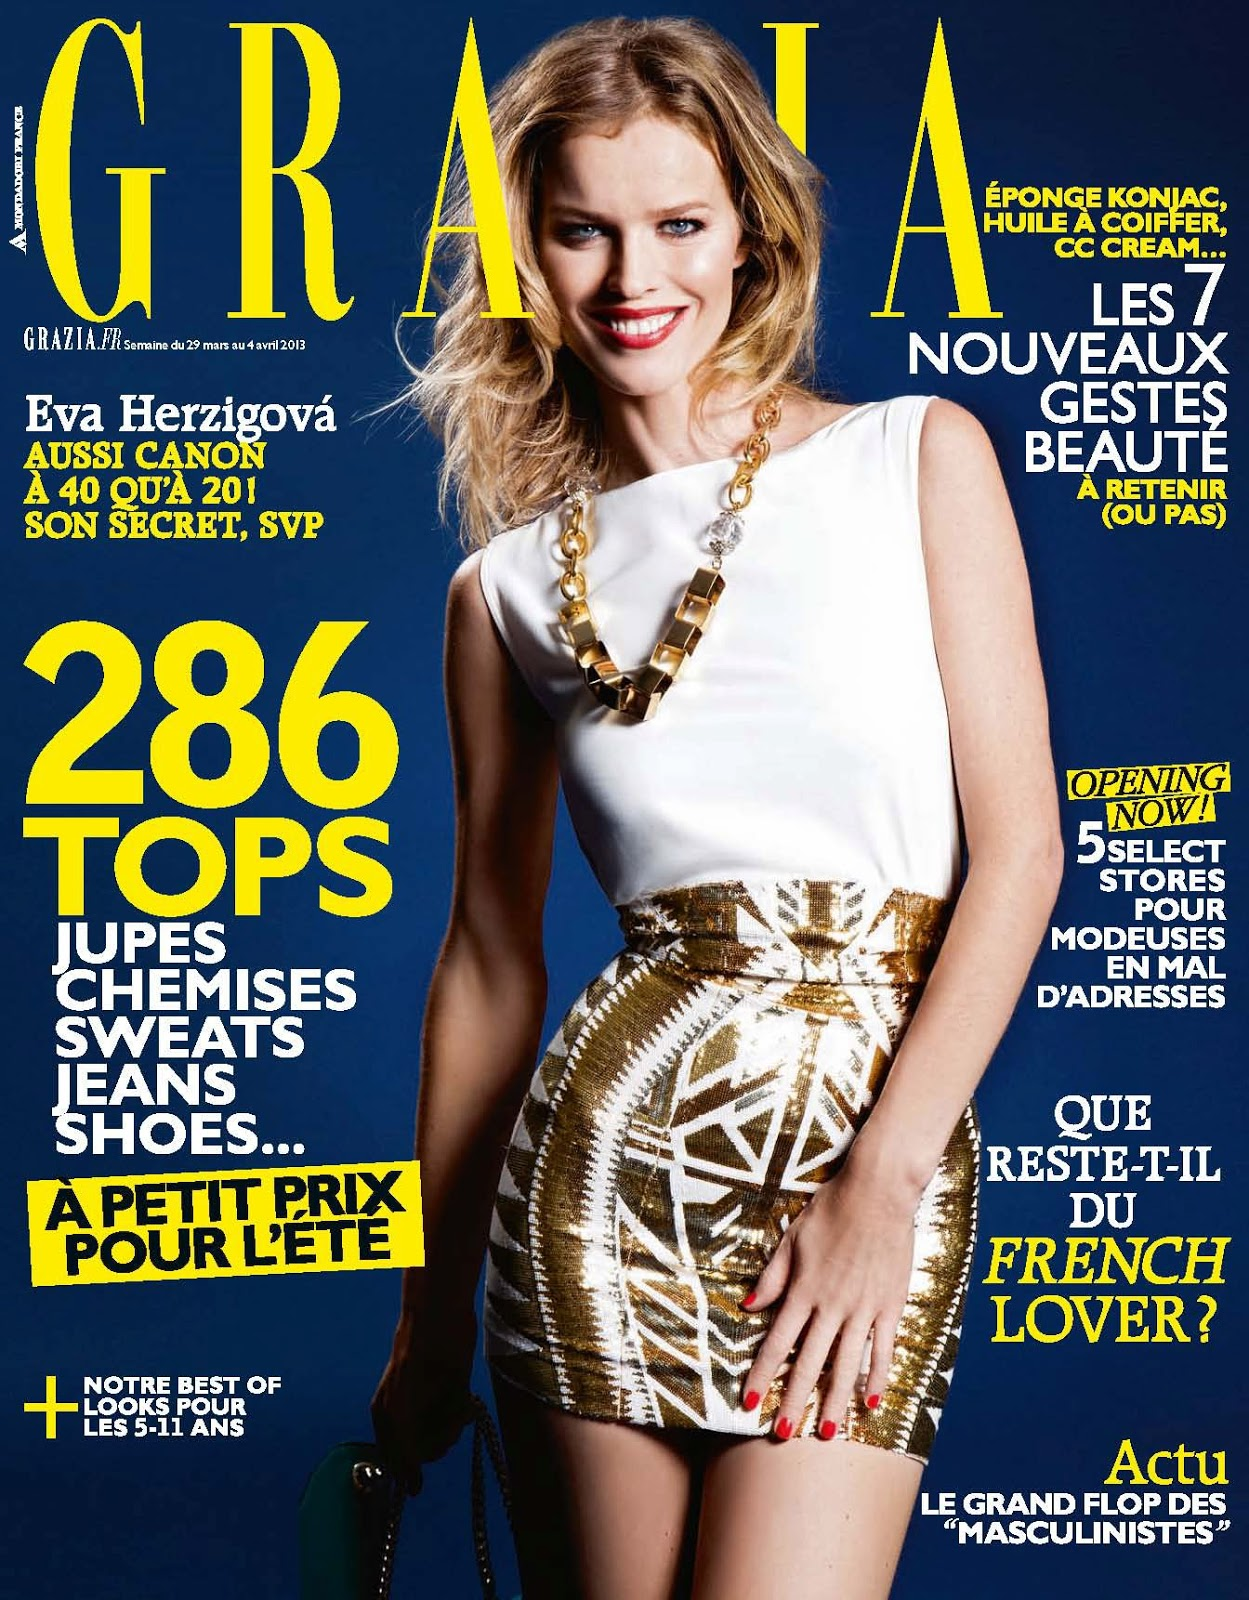 http://2.bp.blogspot.com/-6YEY1OjboVM/UVVieQluLYI/AAAAAAAAqKg/N6as32wjgPI/s1600/Eva+Herzigova+for+Grazia+March+2013+Cover.jpg